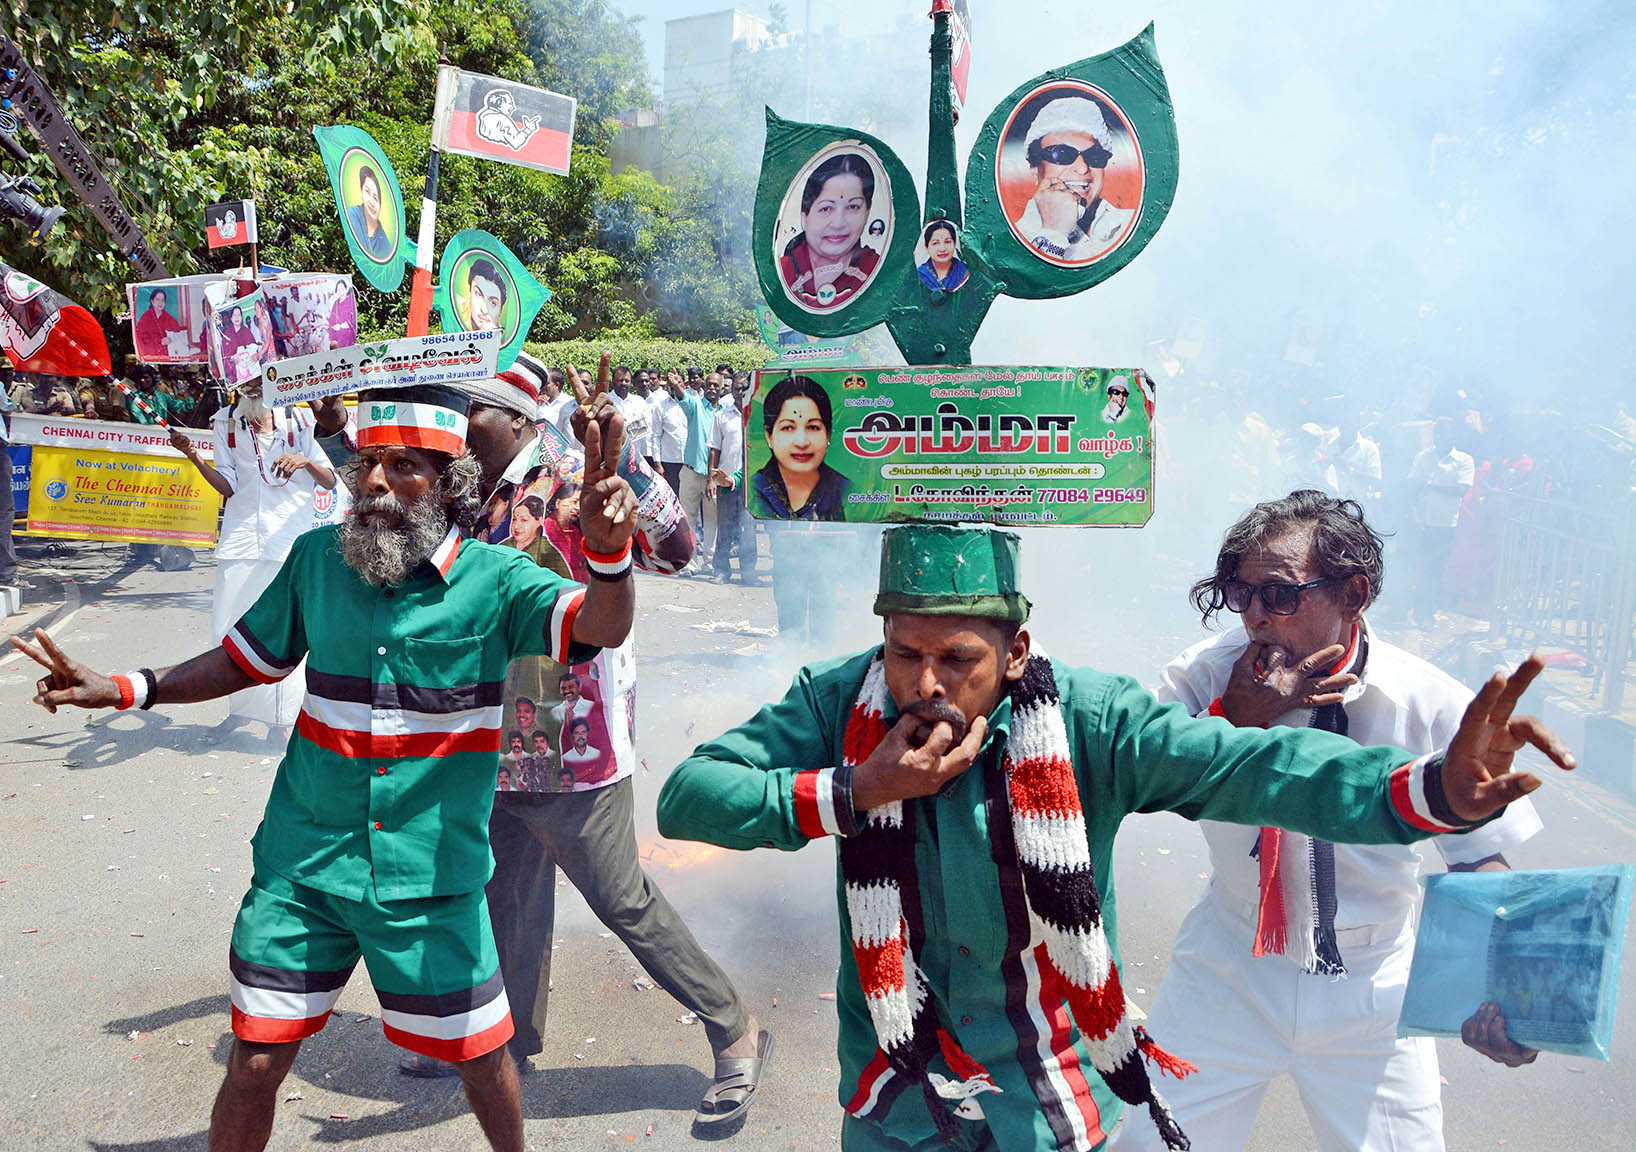 Supporters of India's All India Anna Dravida Munnetra Kazhagam (AIADMK)